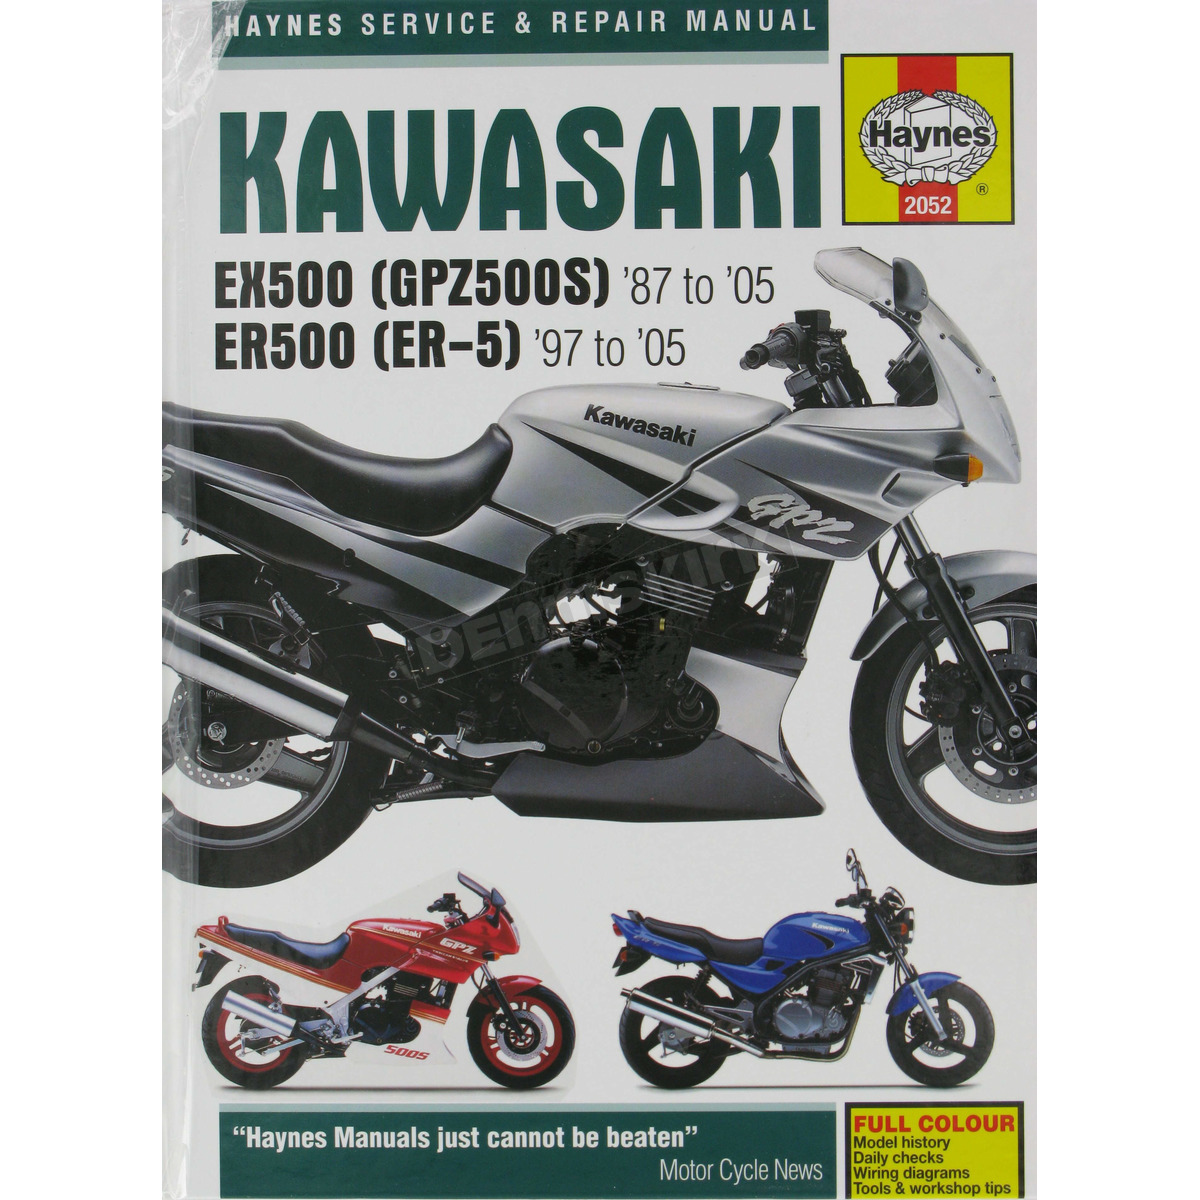 Zg1000 manual pdf 1986 clymer i think any especially those covering bikes which only come with full body zr here enciclopedia de arboles frutales er 5 guide science fandeluxe Gallery